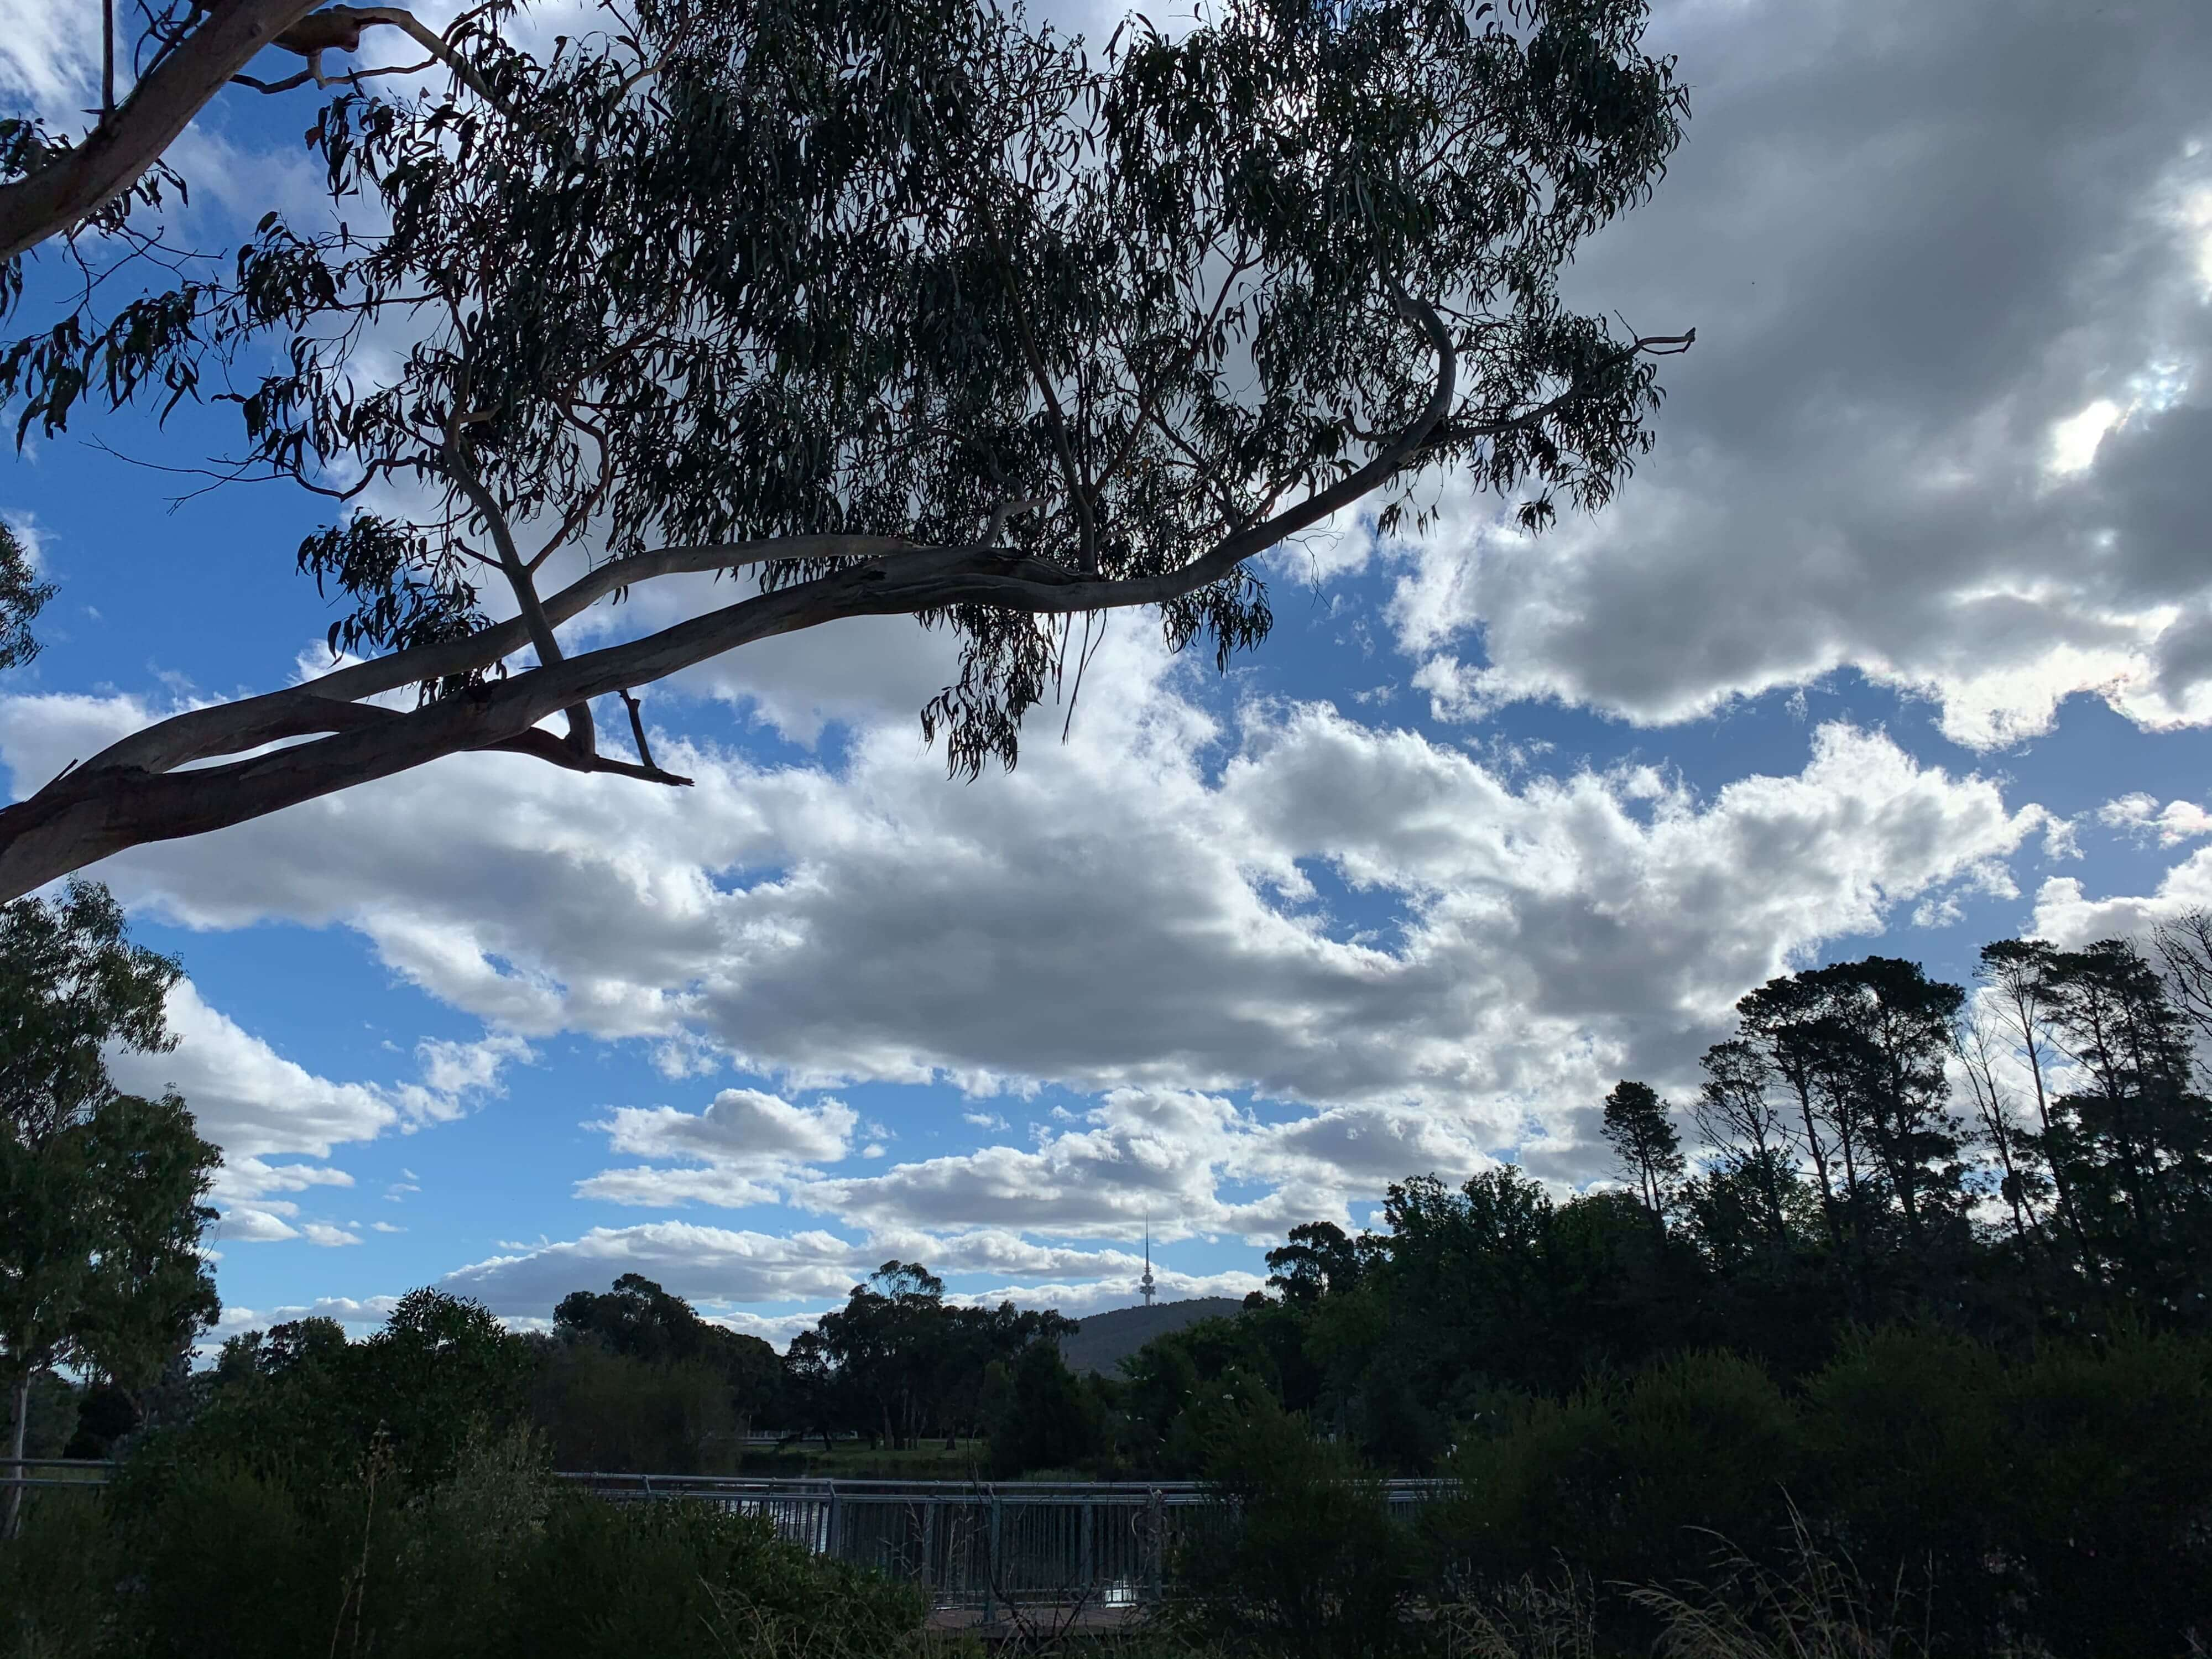 dark clouds hovering over the city on a summer afternoon, Canberra